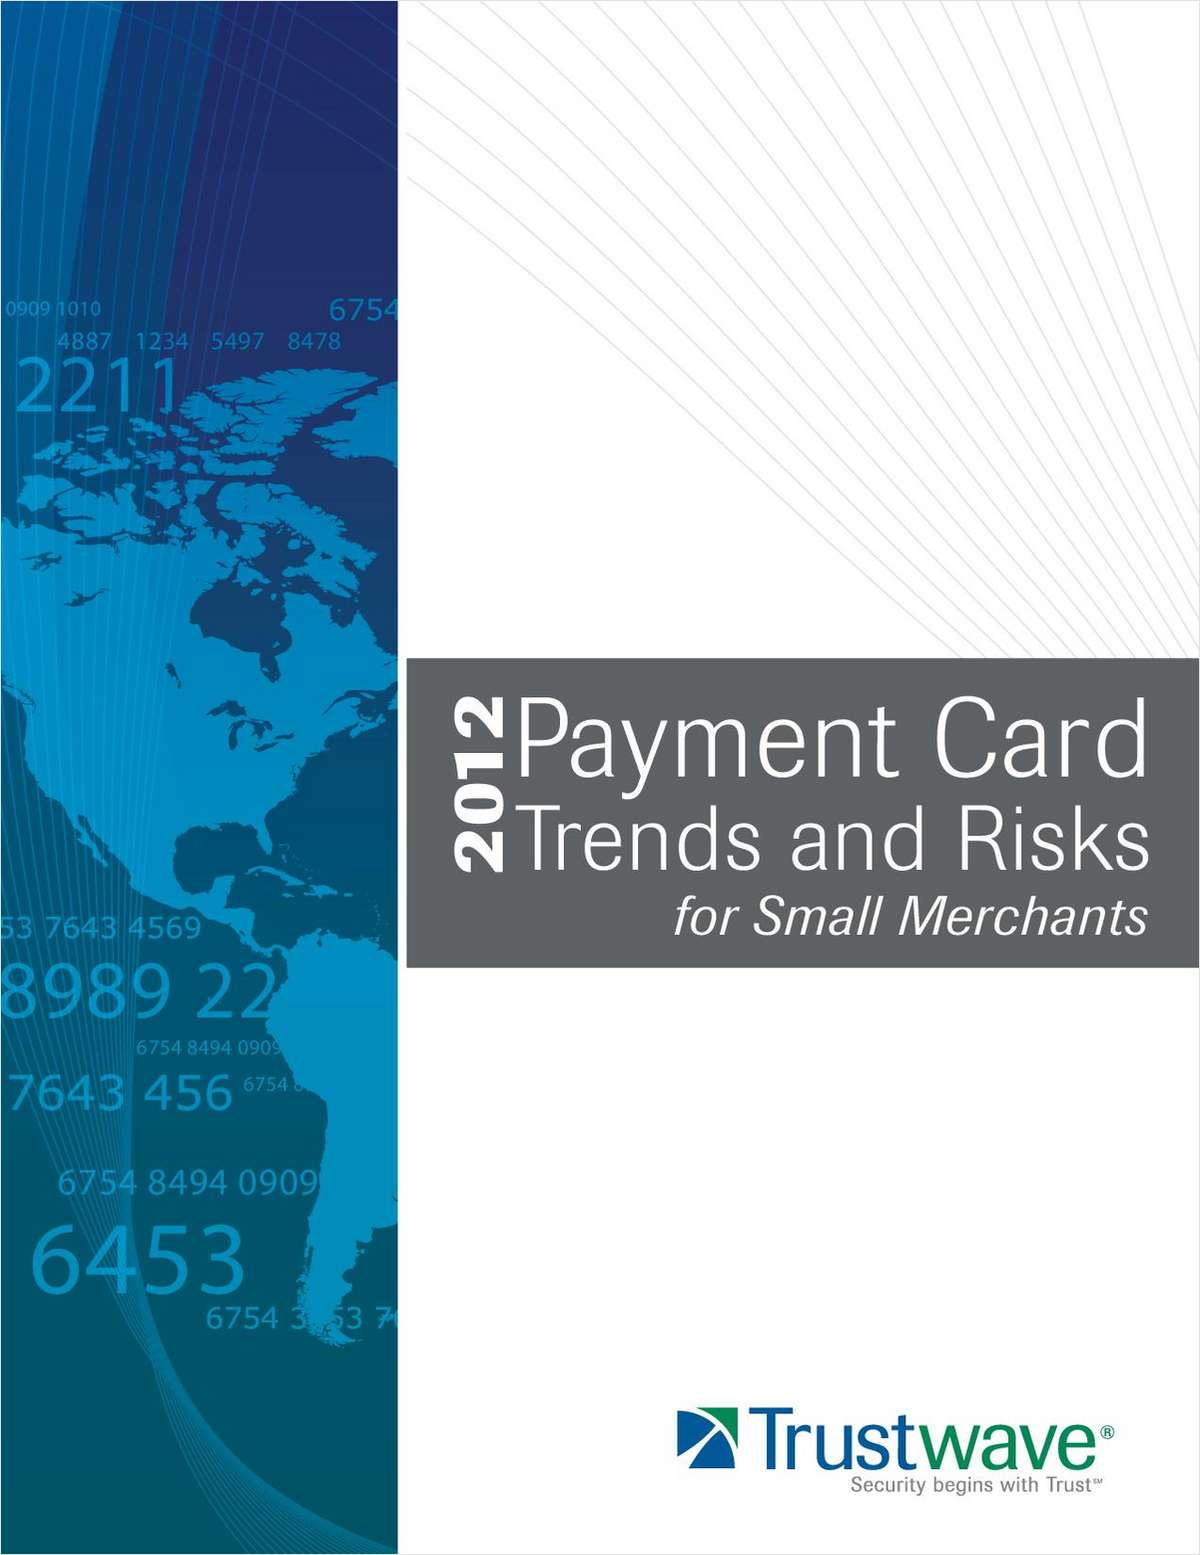 Payment Card Trends and Risks for Small Merchants